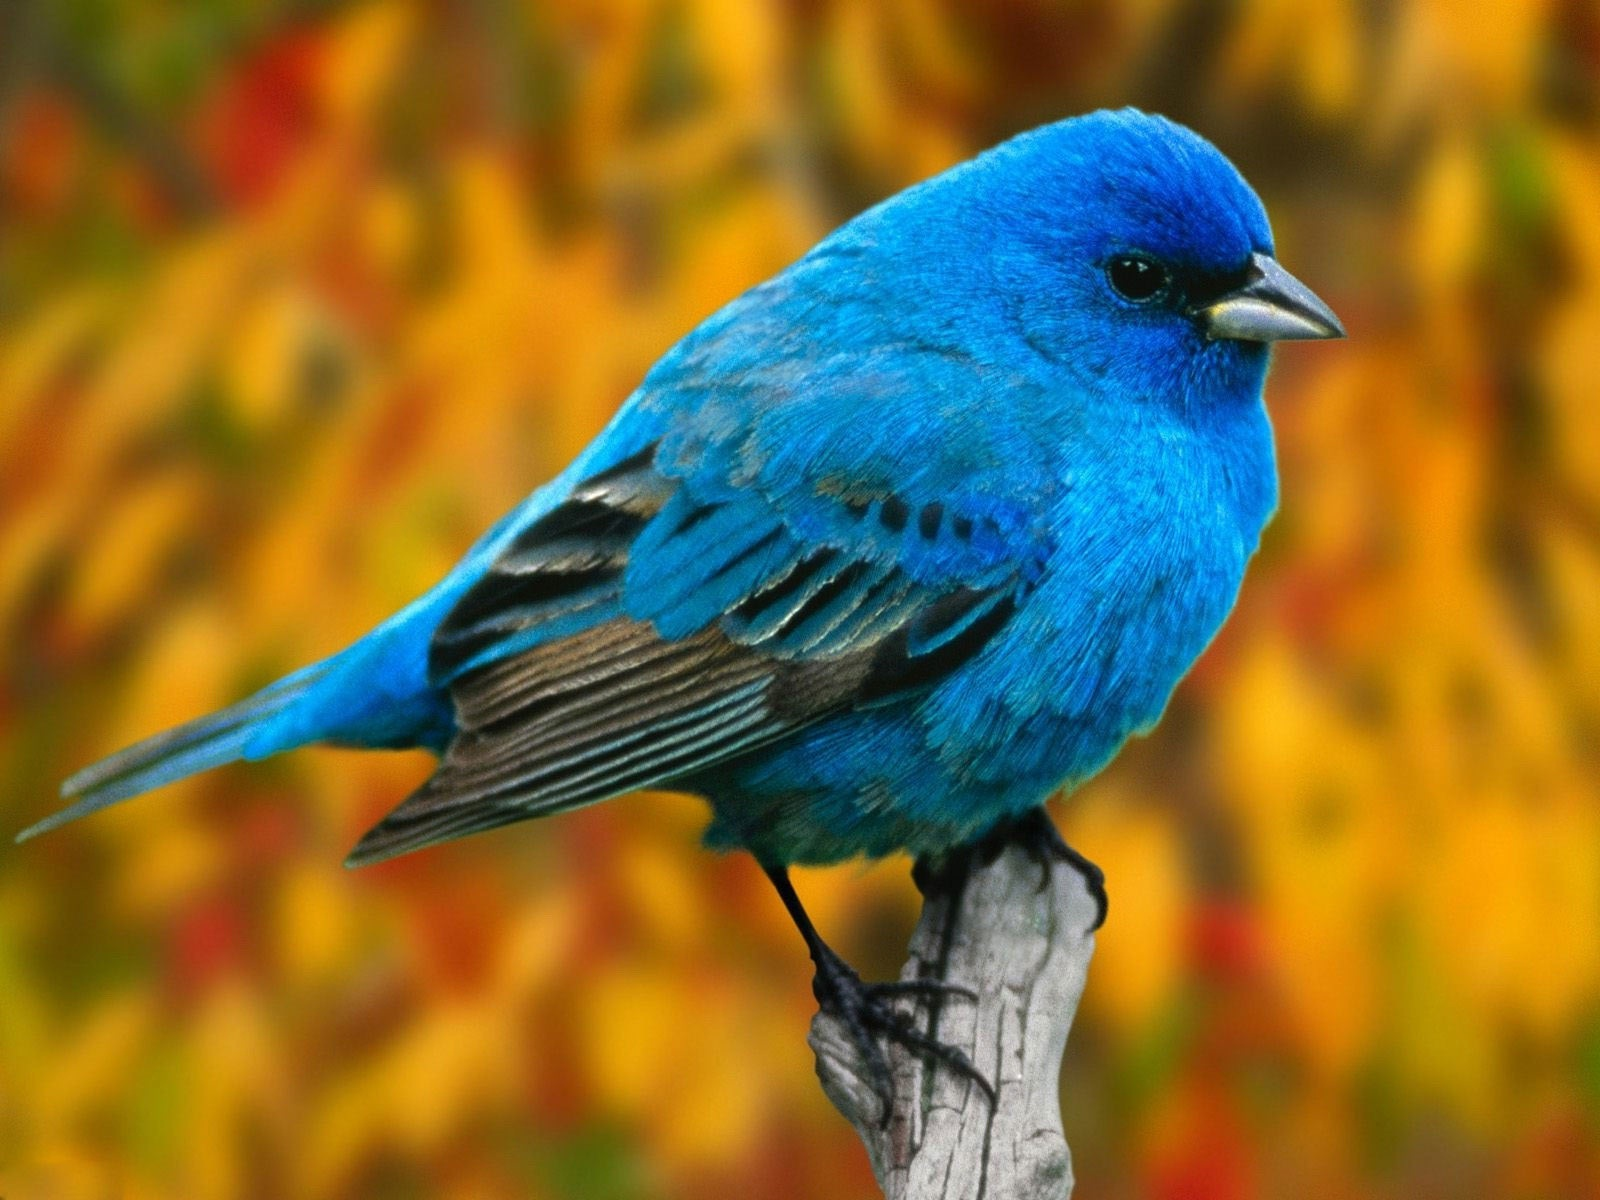 Top Bird Bluish Mobile Hd Wallpaper wallpapers55com   Best 1600x1200